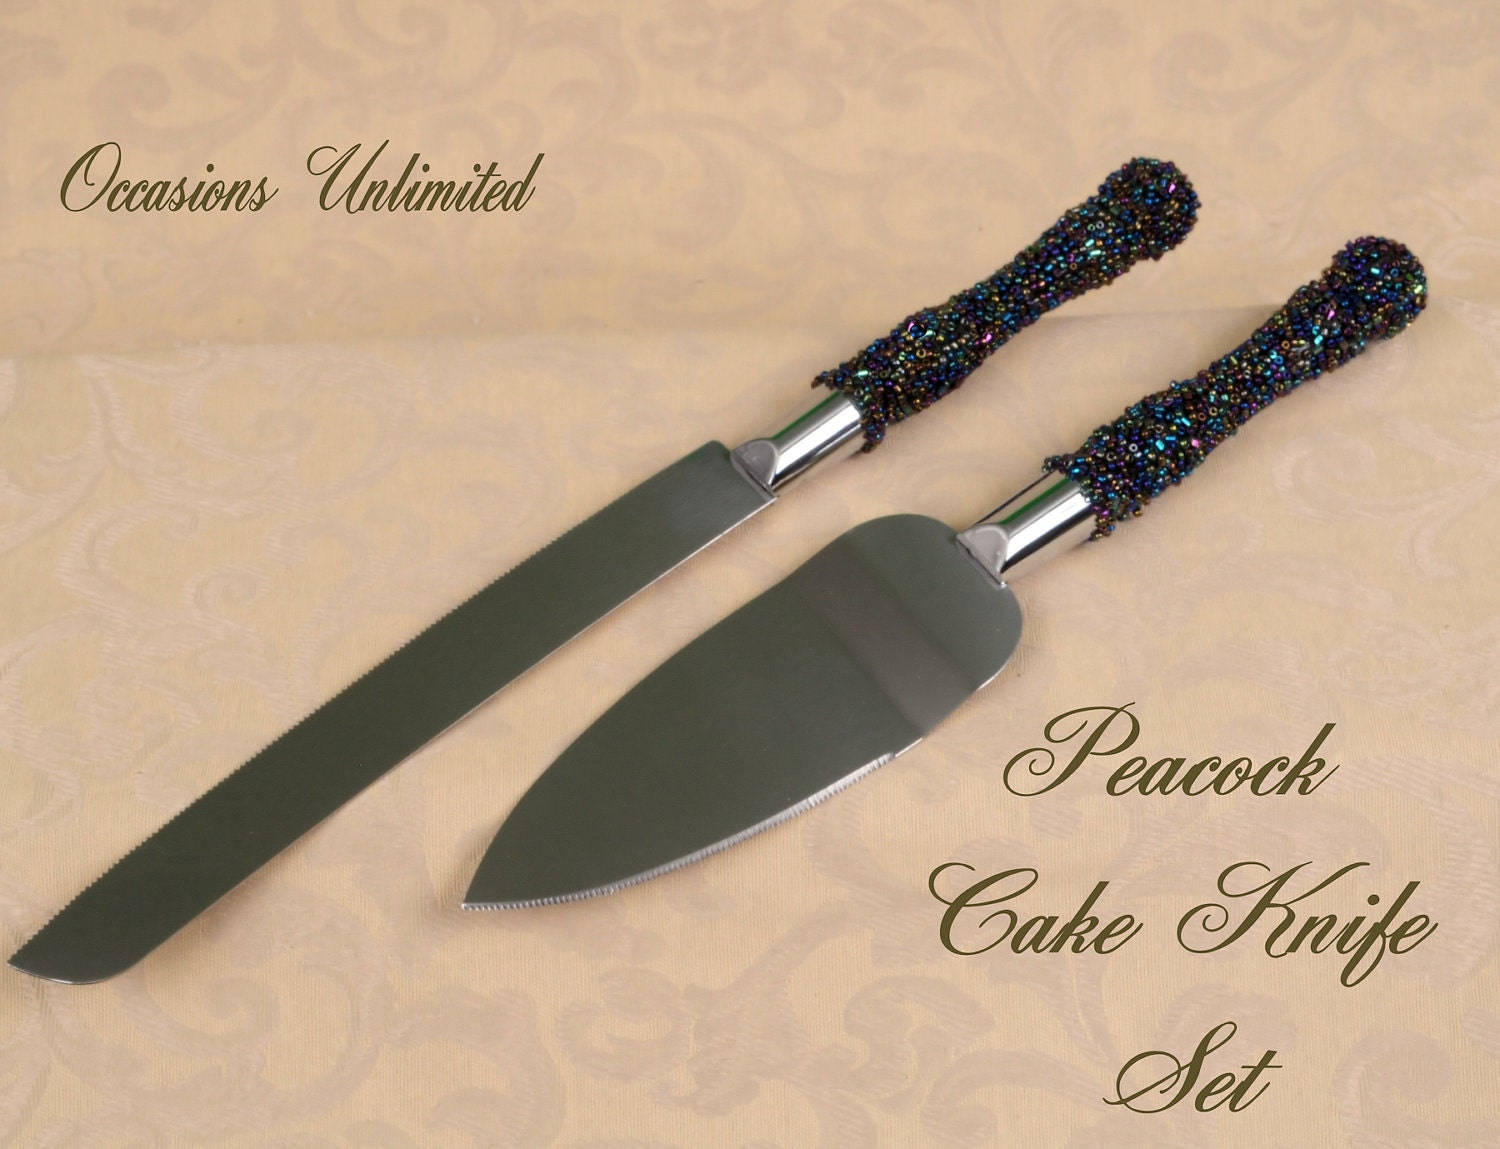 peacock wedding cake knife set with beaded by occasionsunlimited. Black Bedroom Furniture Sets. Home Design Ideas